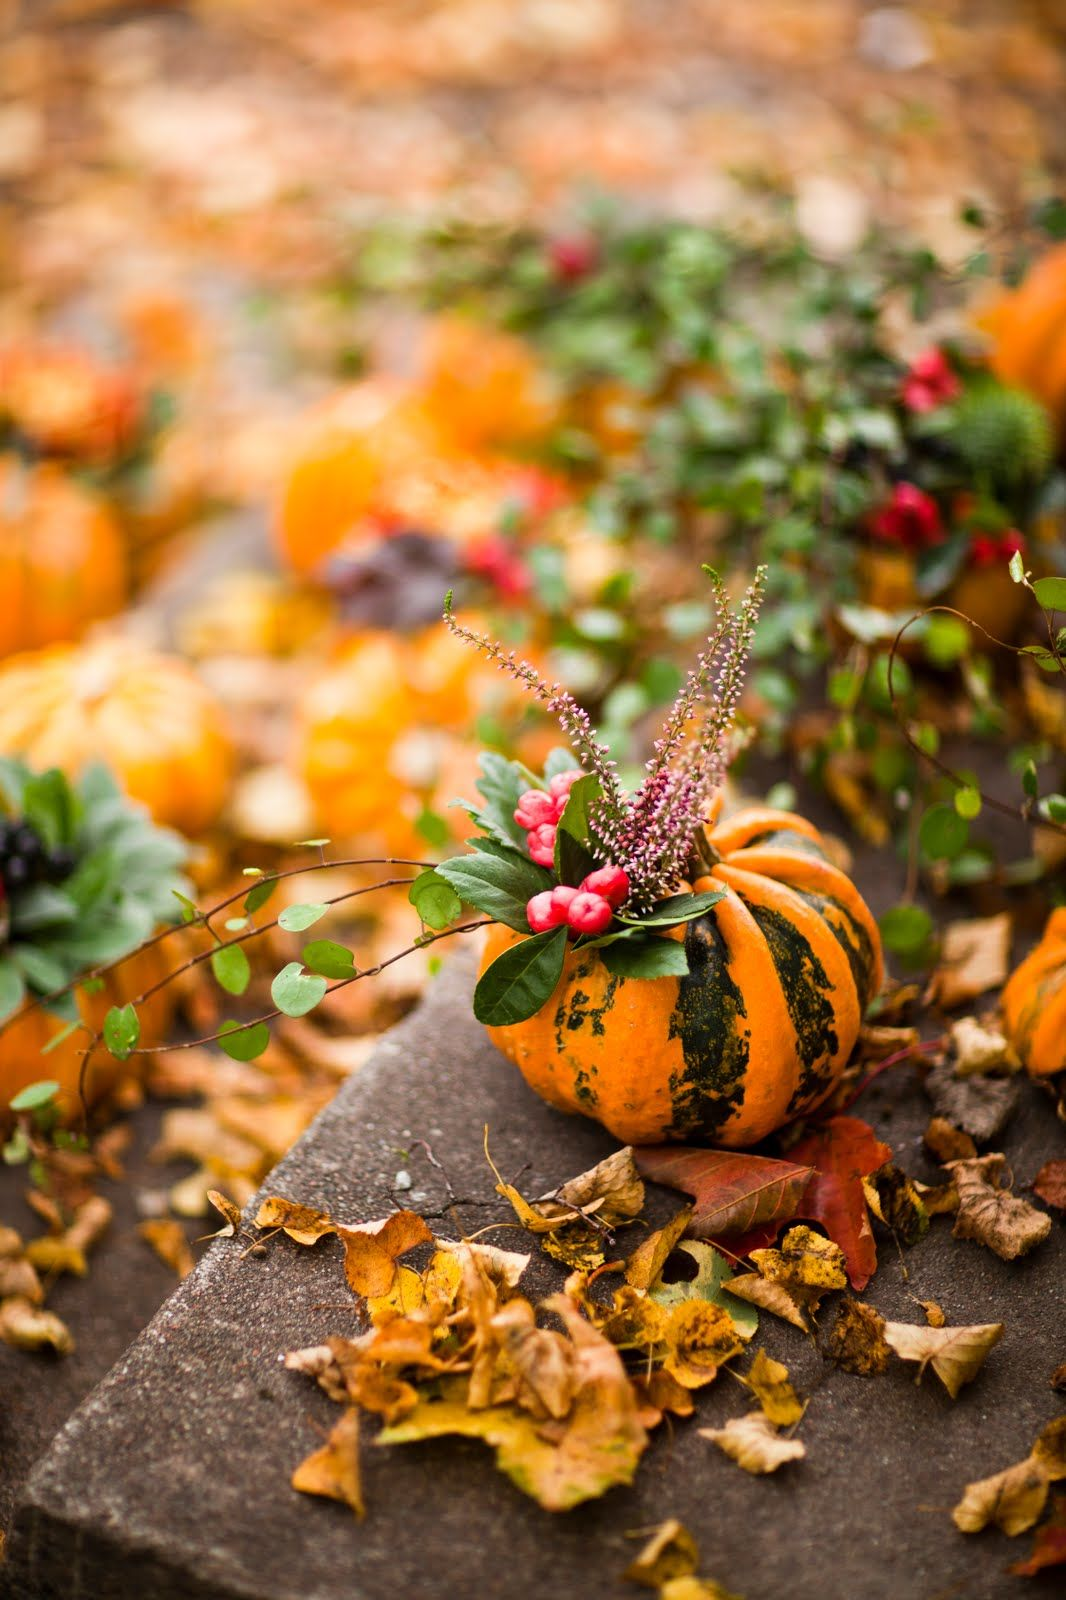 using smallish pumpkins or colorful squash decored with some festive berries and/or branches.   pretty!  ~cam